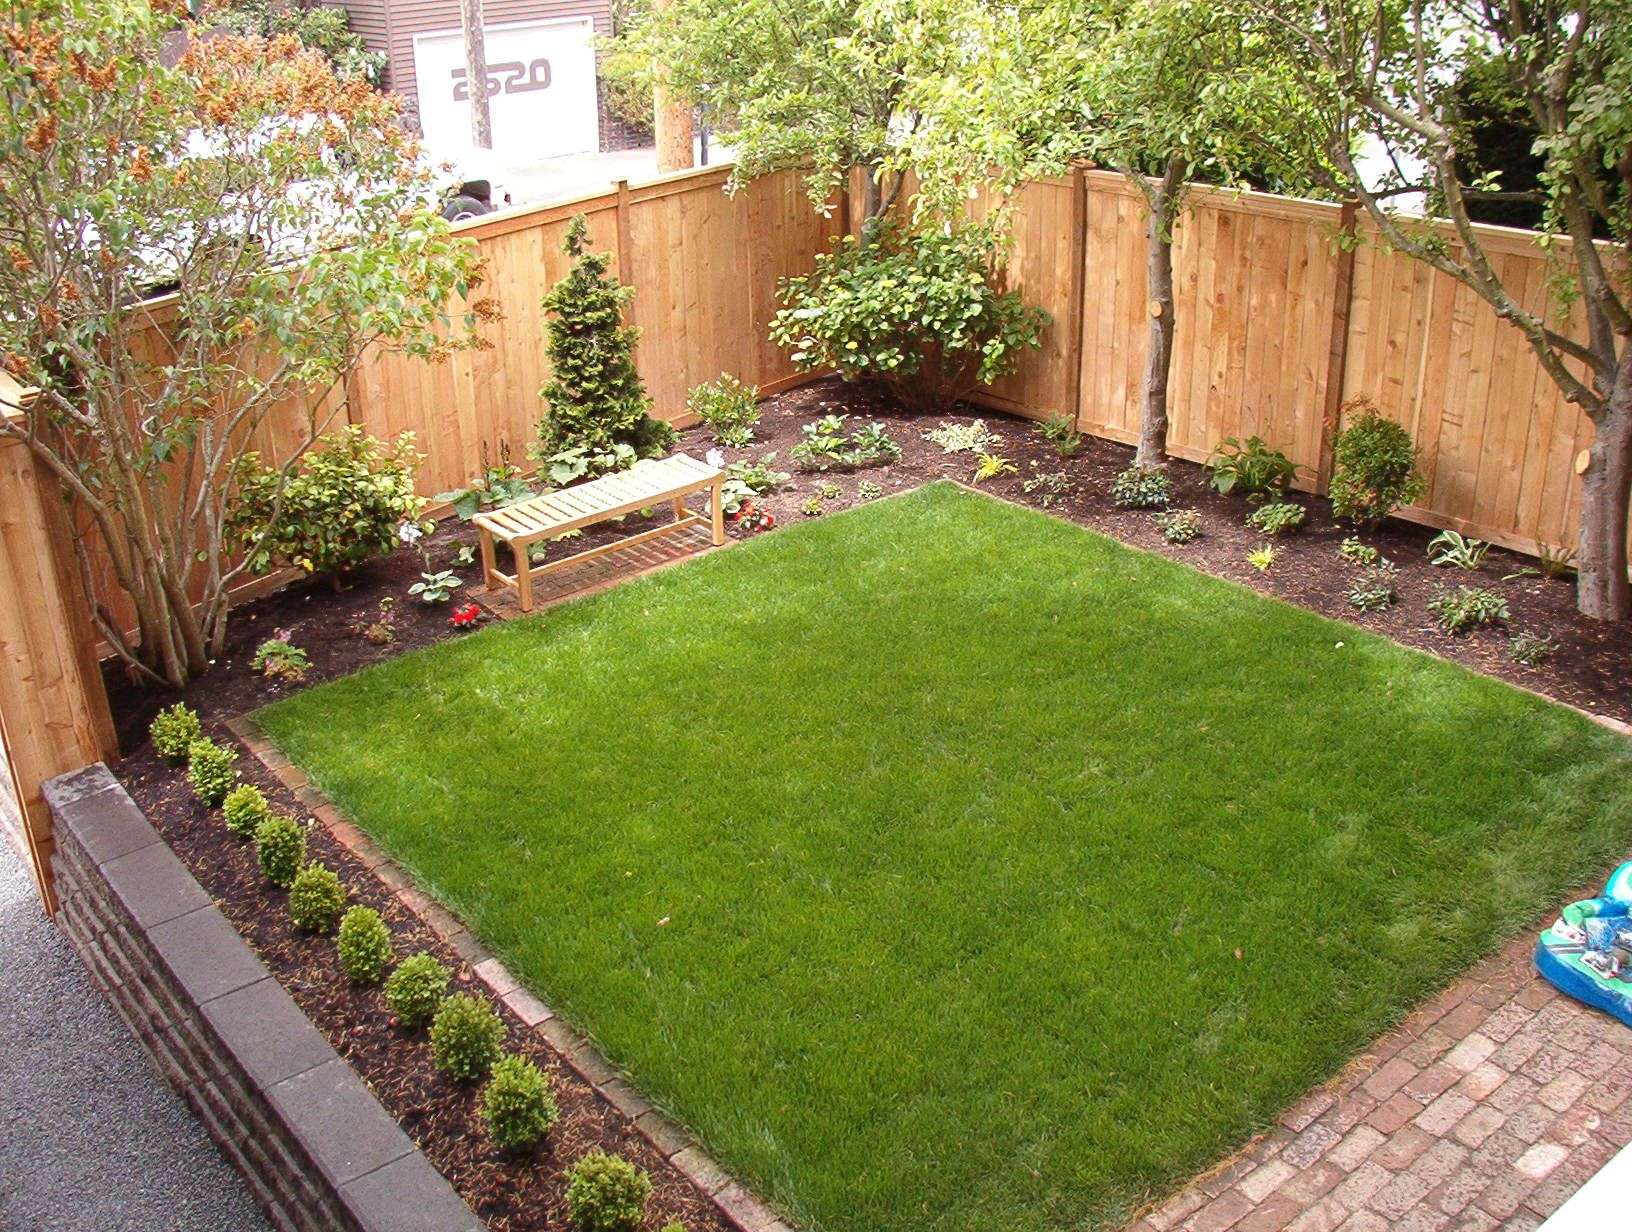 Sod lawn for children to play on landscape ideas for Best backyard garden designs